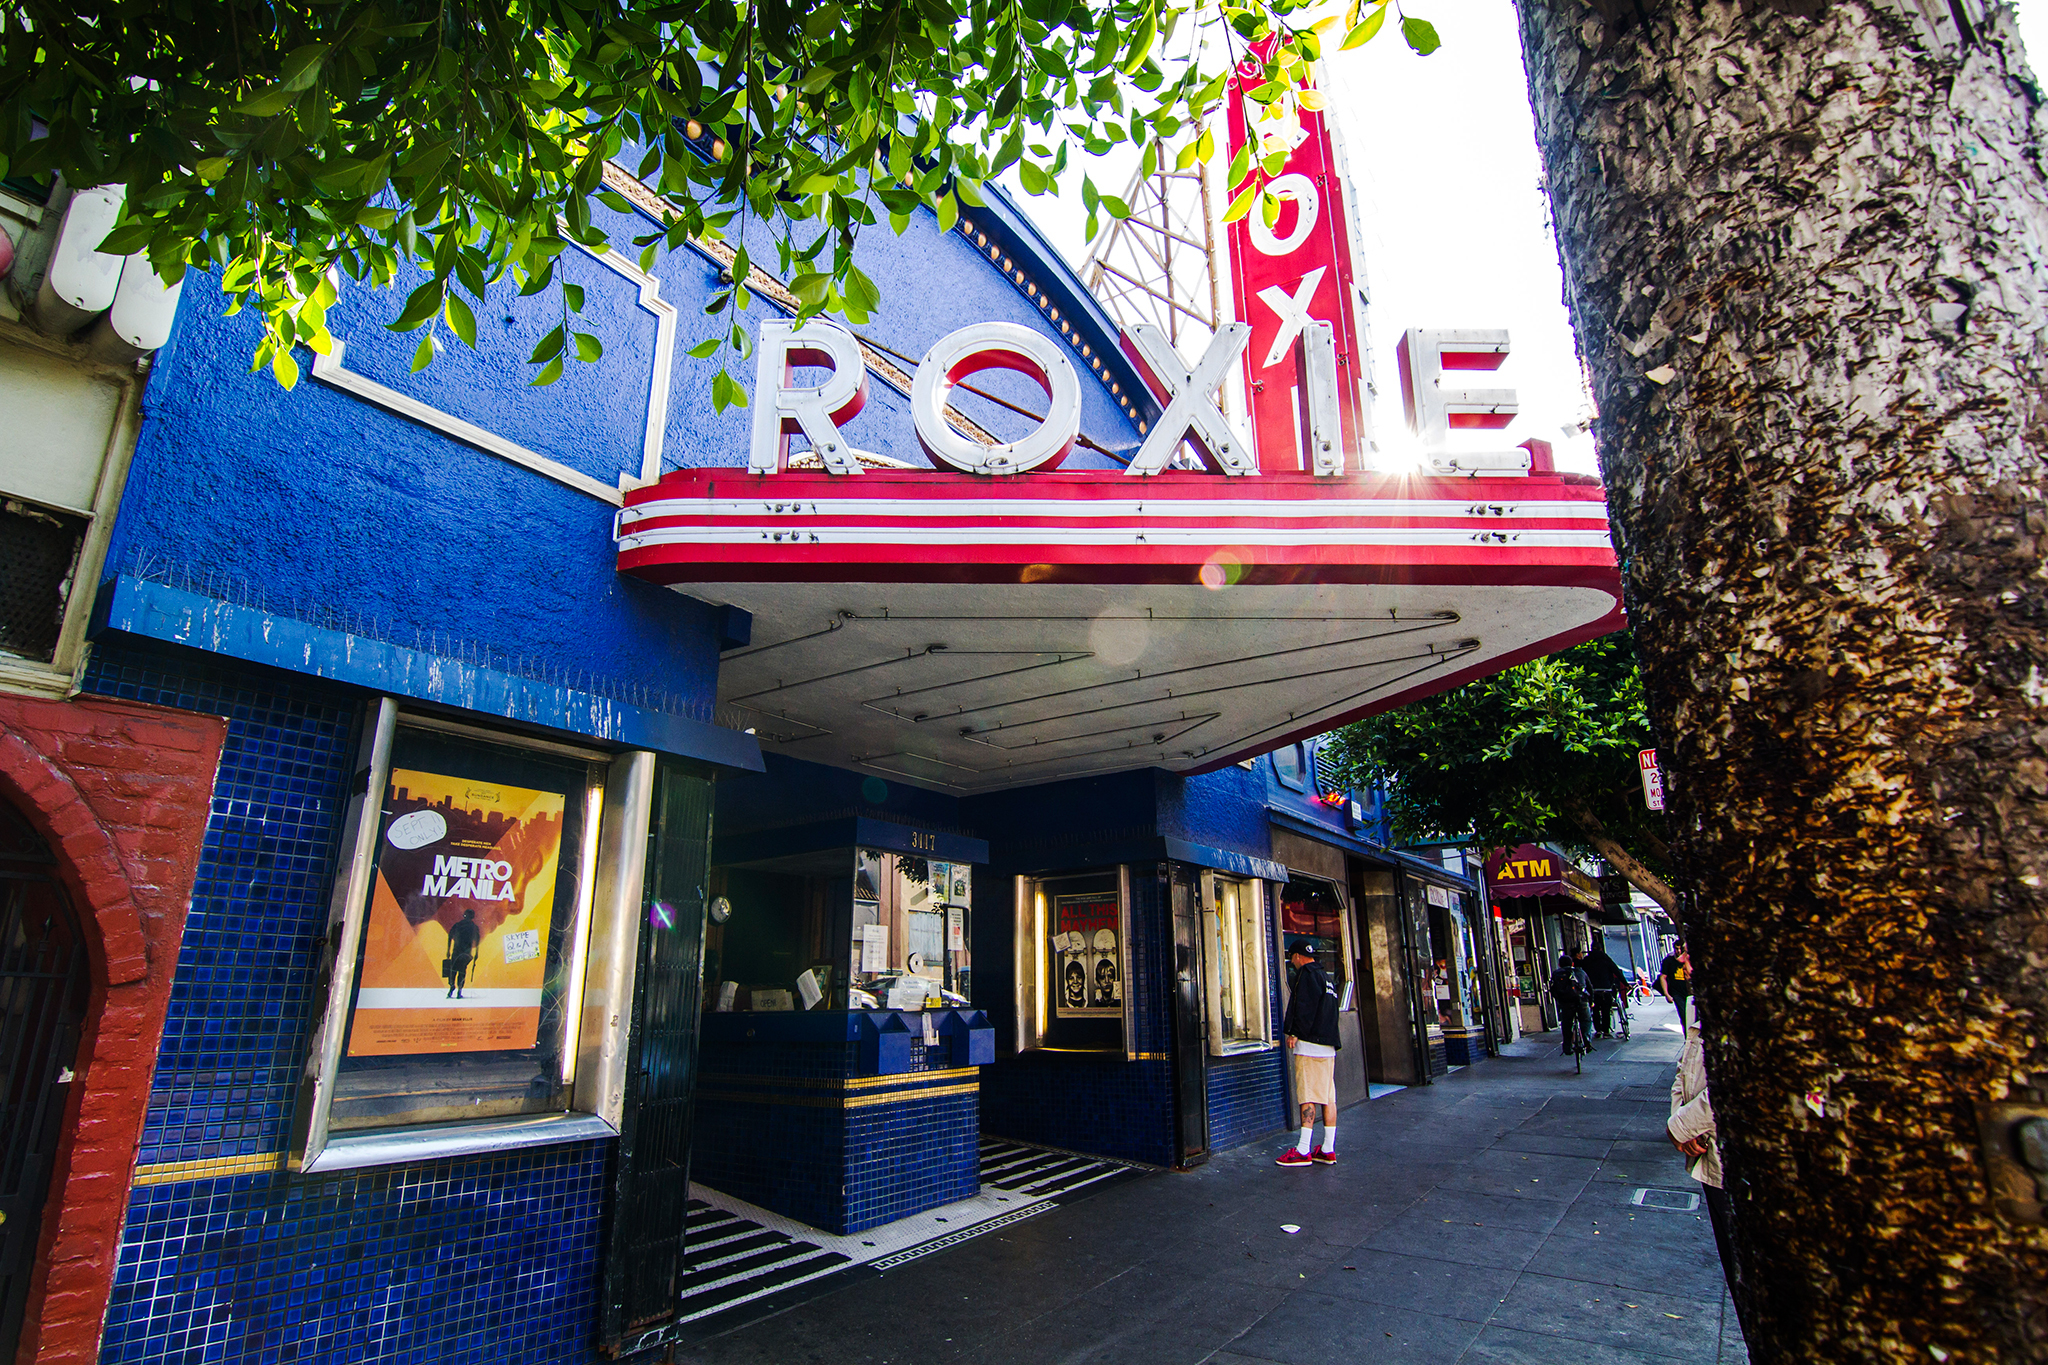 Roxie Theatre & Little Roxie